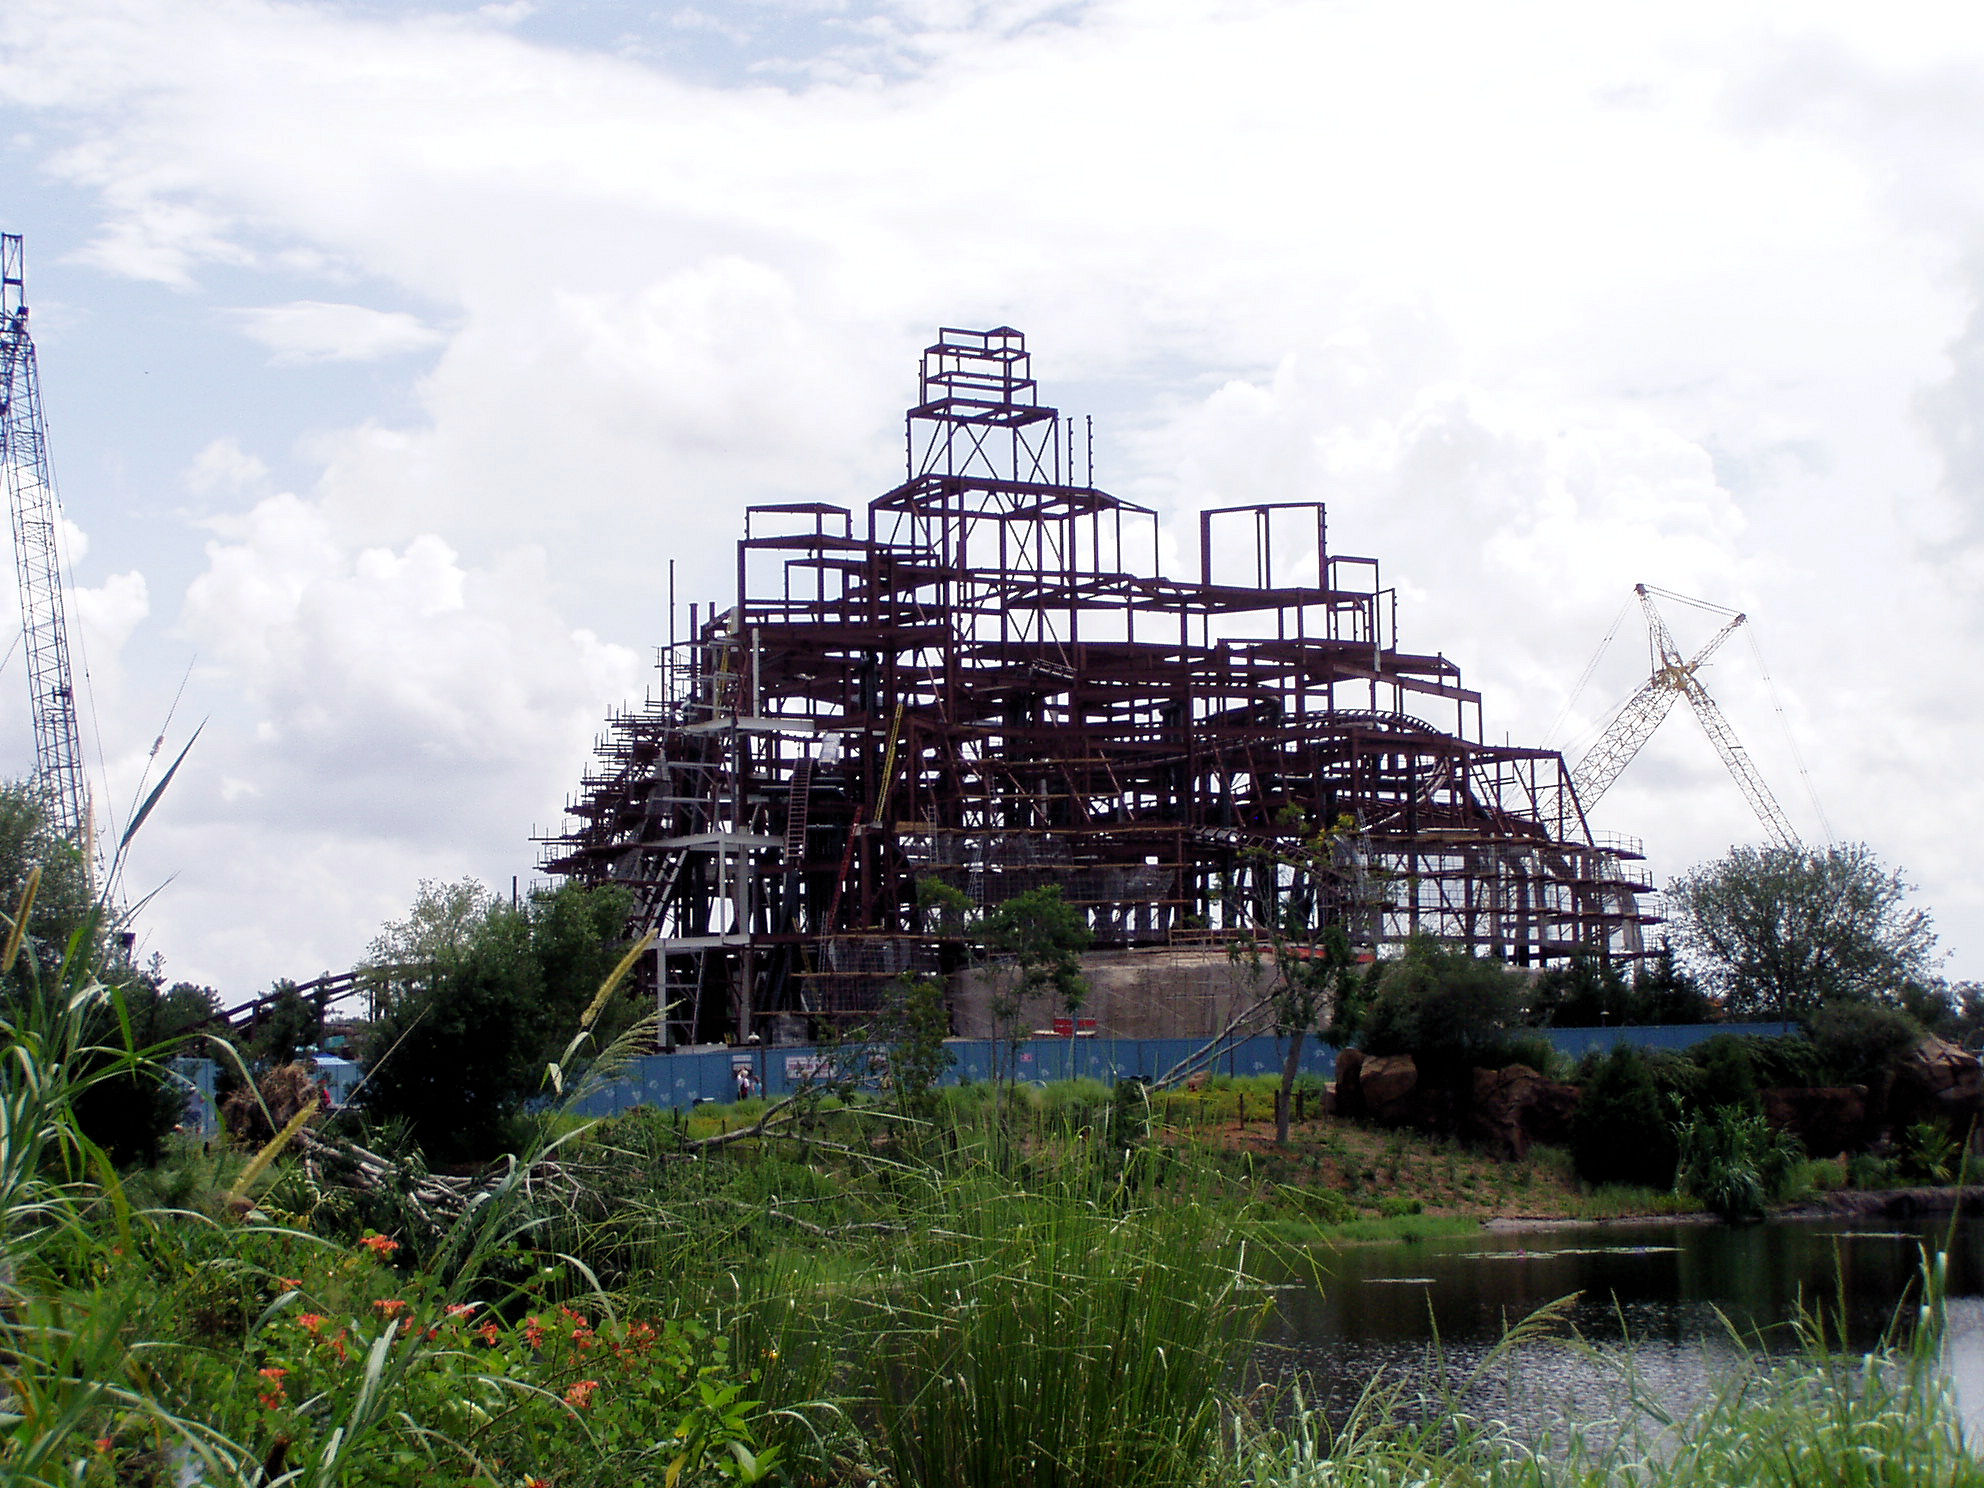 The under construction Expedition Everest attraction at Disney's Animal Kingdom.